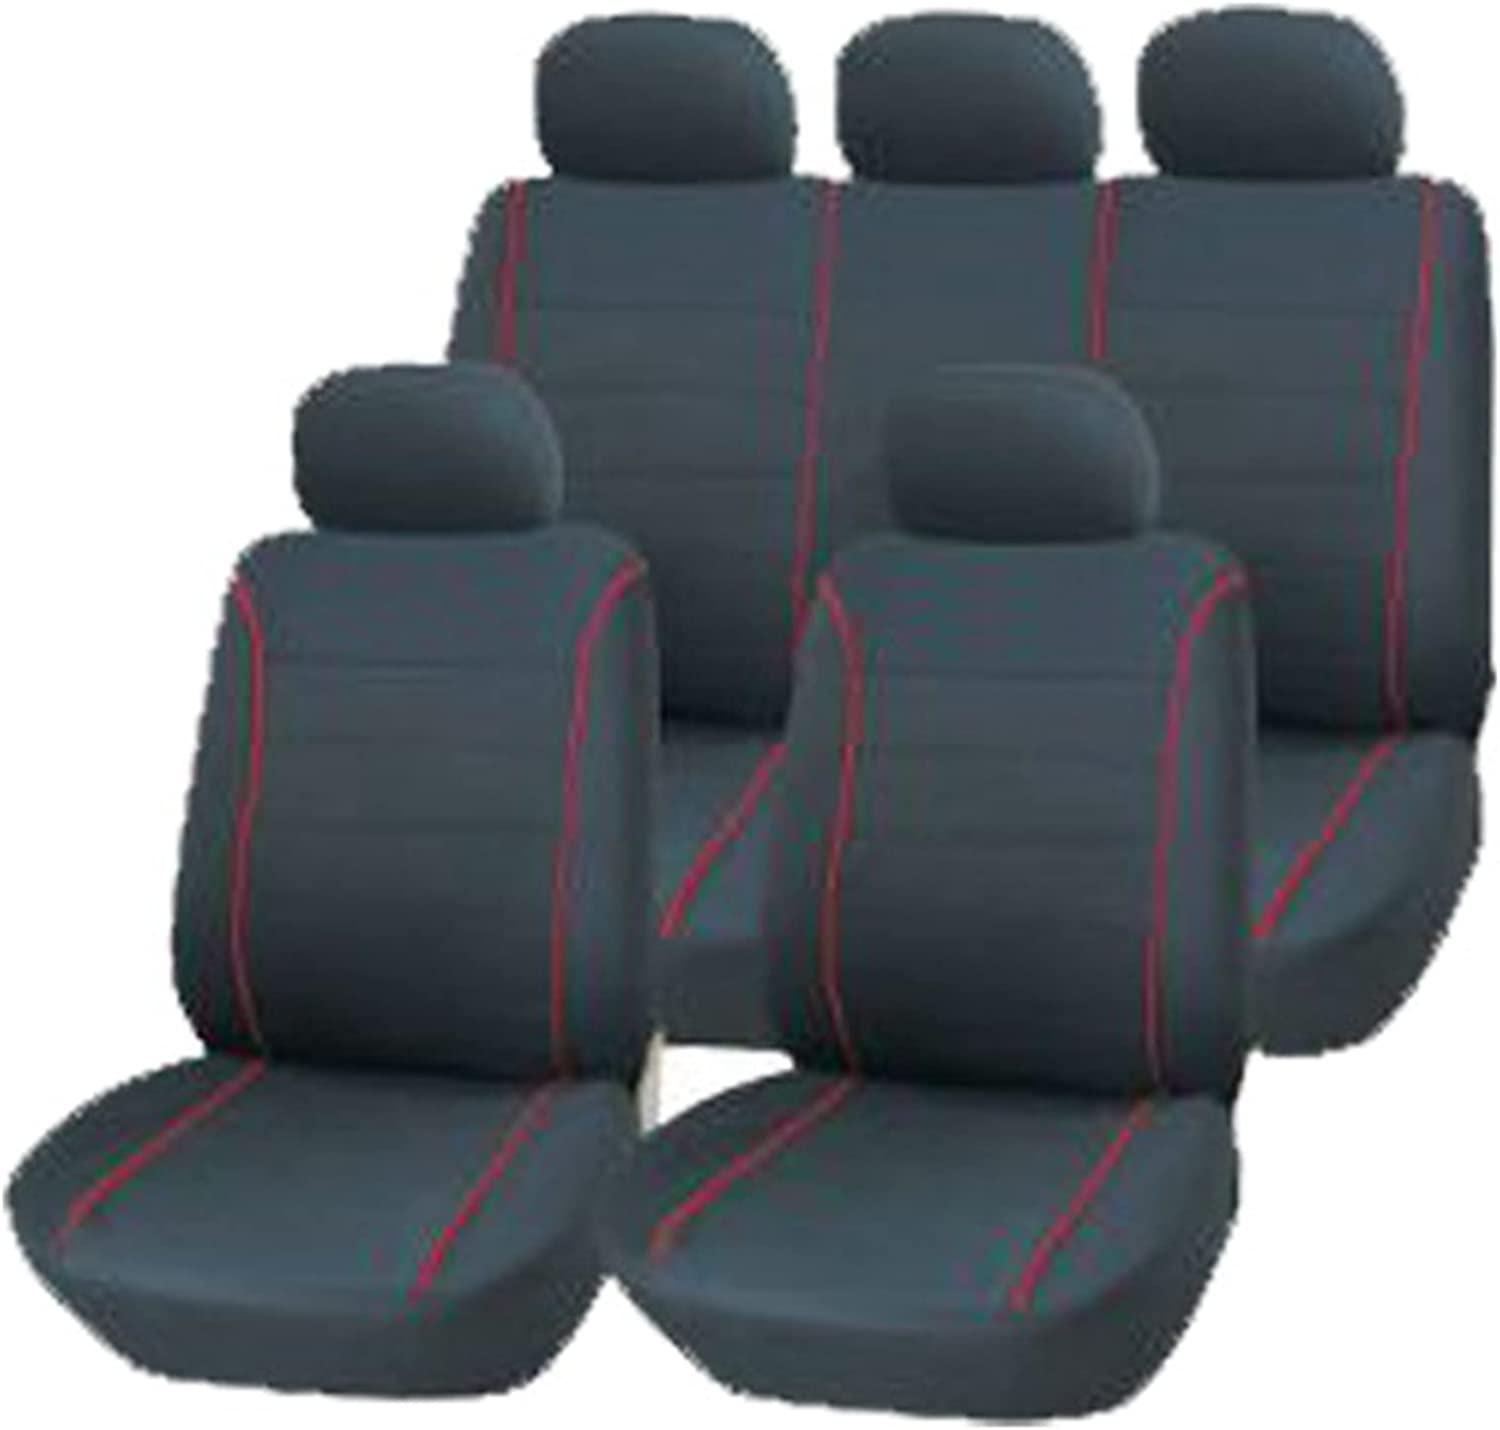 9pcs General Seasons 5 Seats Car and Delicate Max 58% OFF Product Covers S Seat Cozy